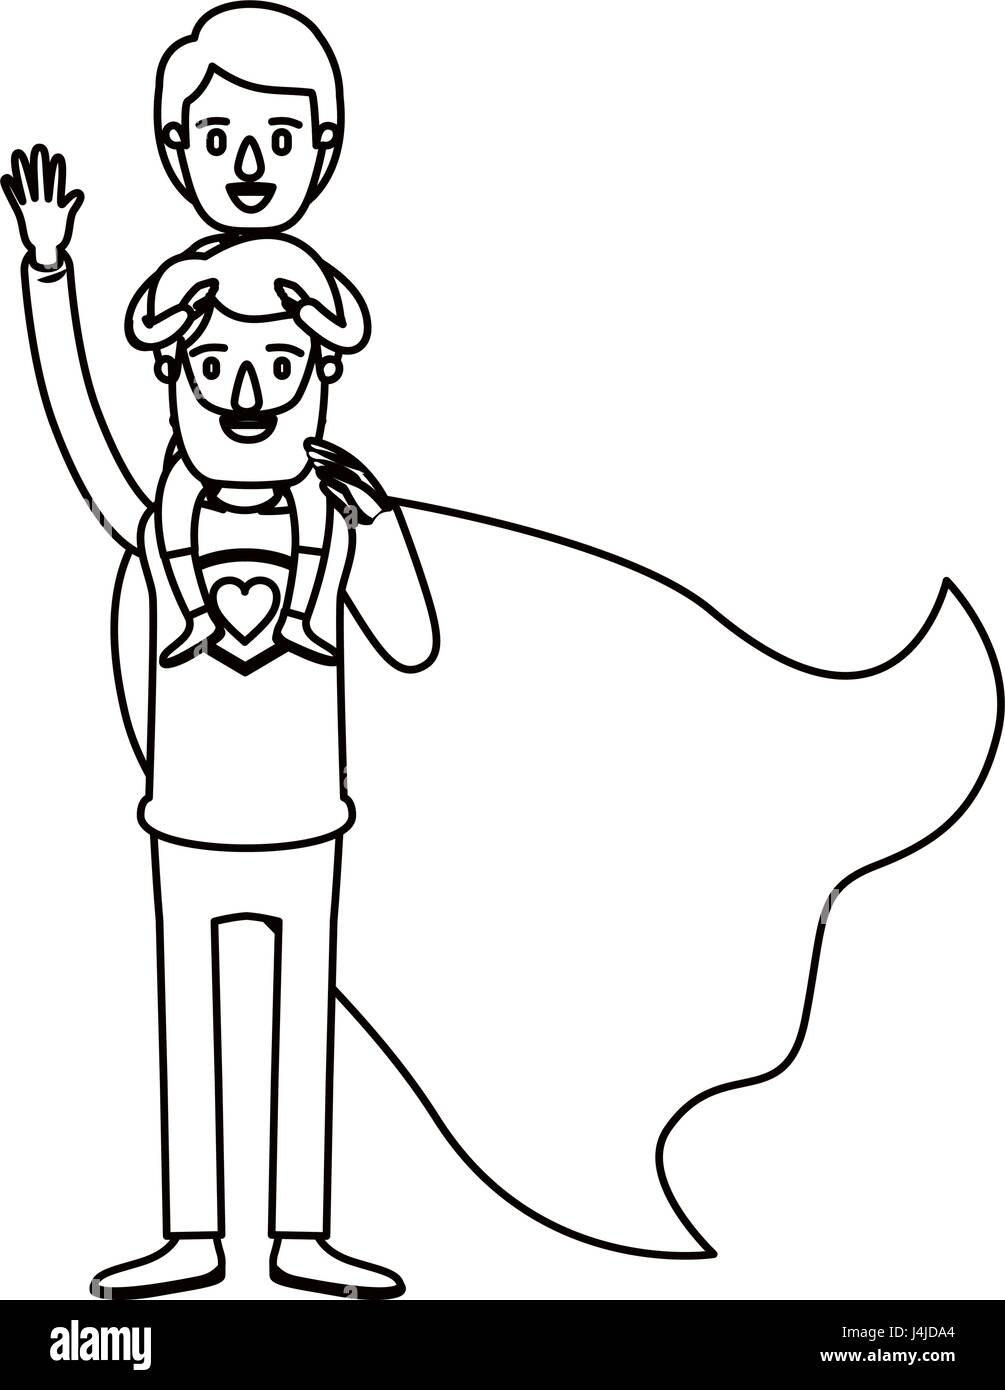 silhouette cartoon full body super dad hero with boy on his back - Stock Image